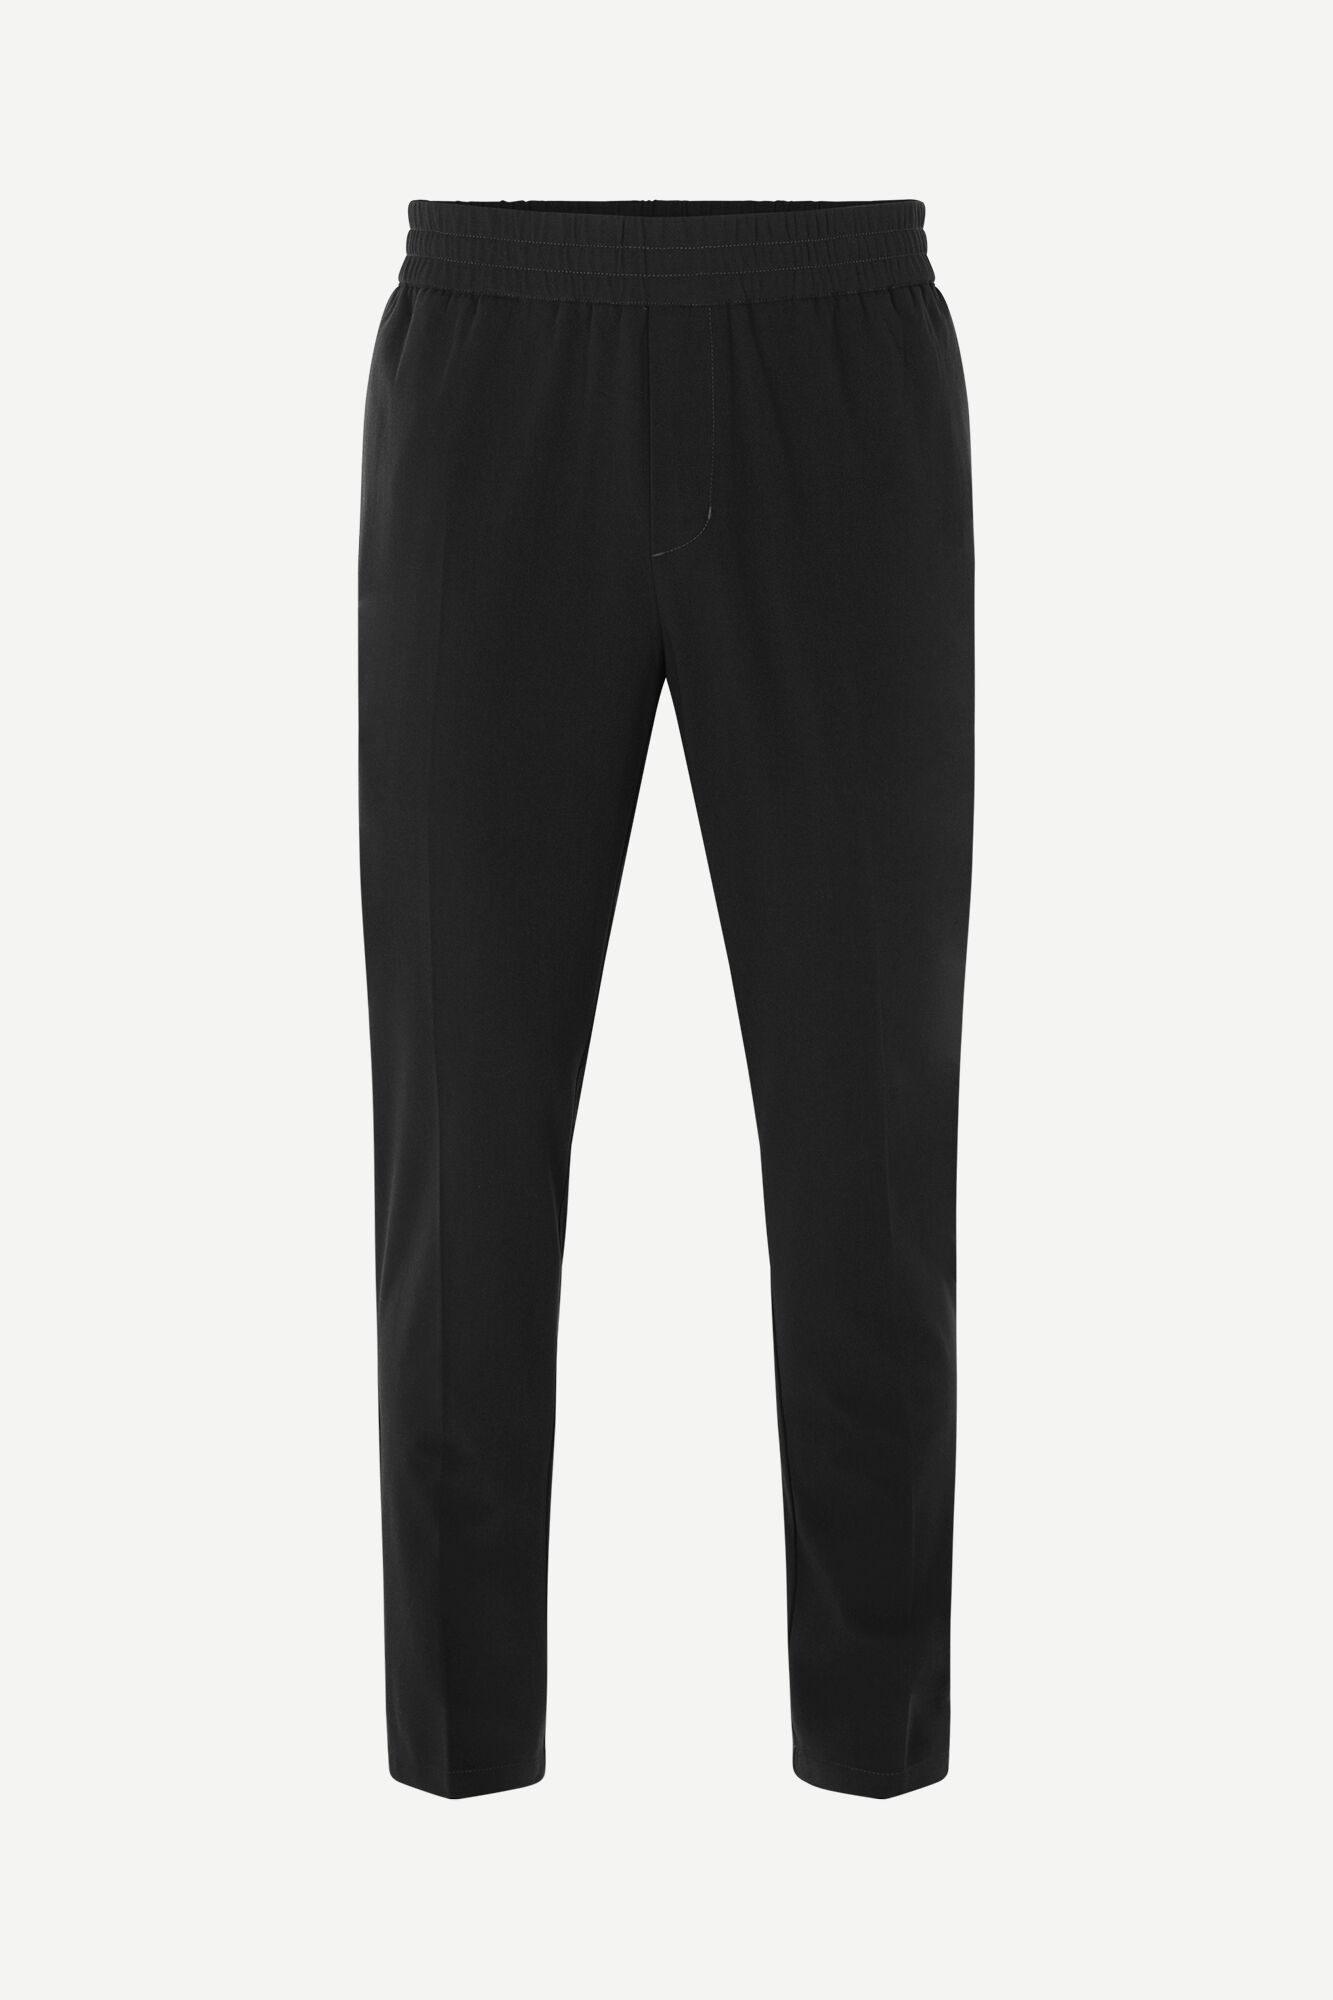 Smithy Relaxed Fit Trouser Black-2